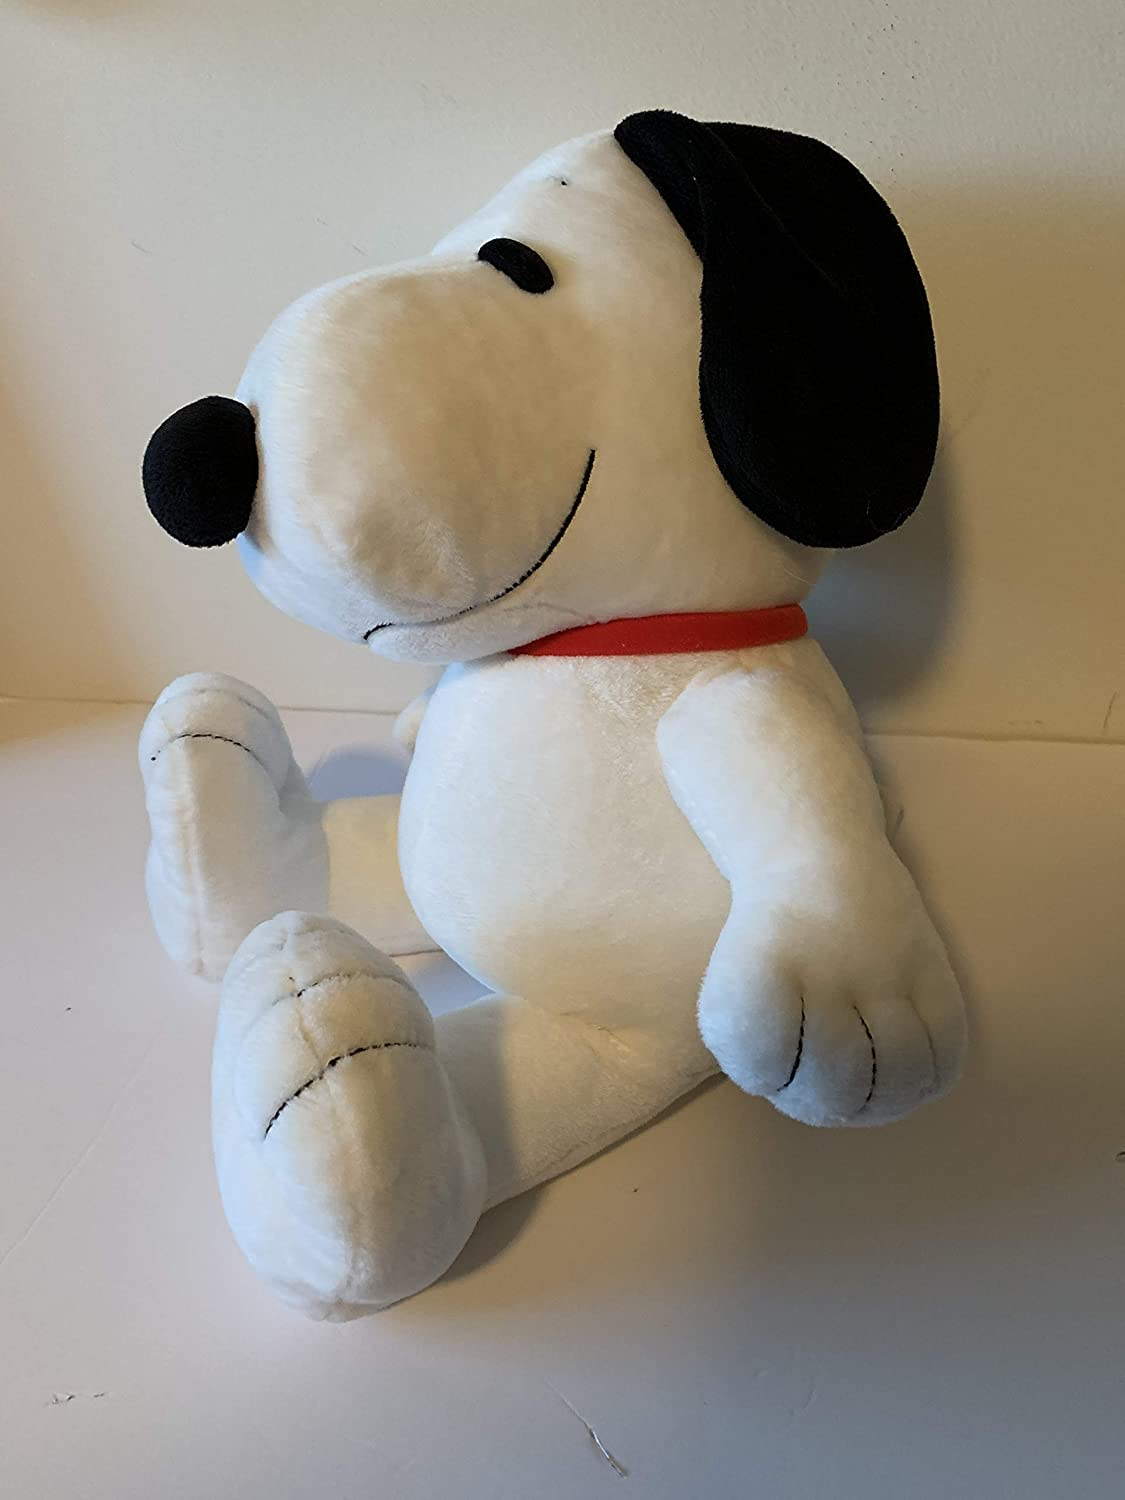 snoopy Weighted stuffed animal 4 lbs sensory toy washable dog